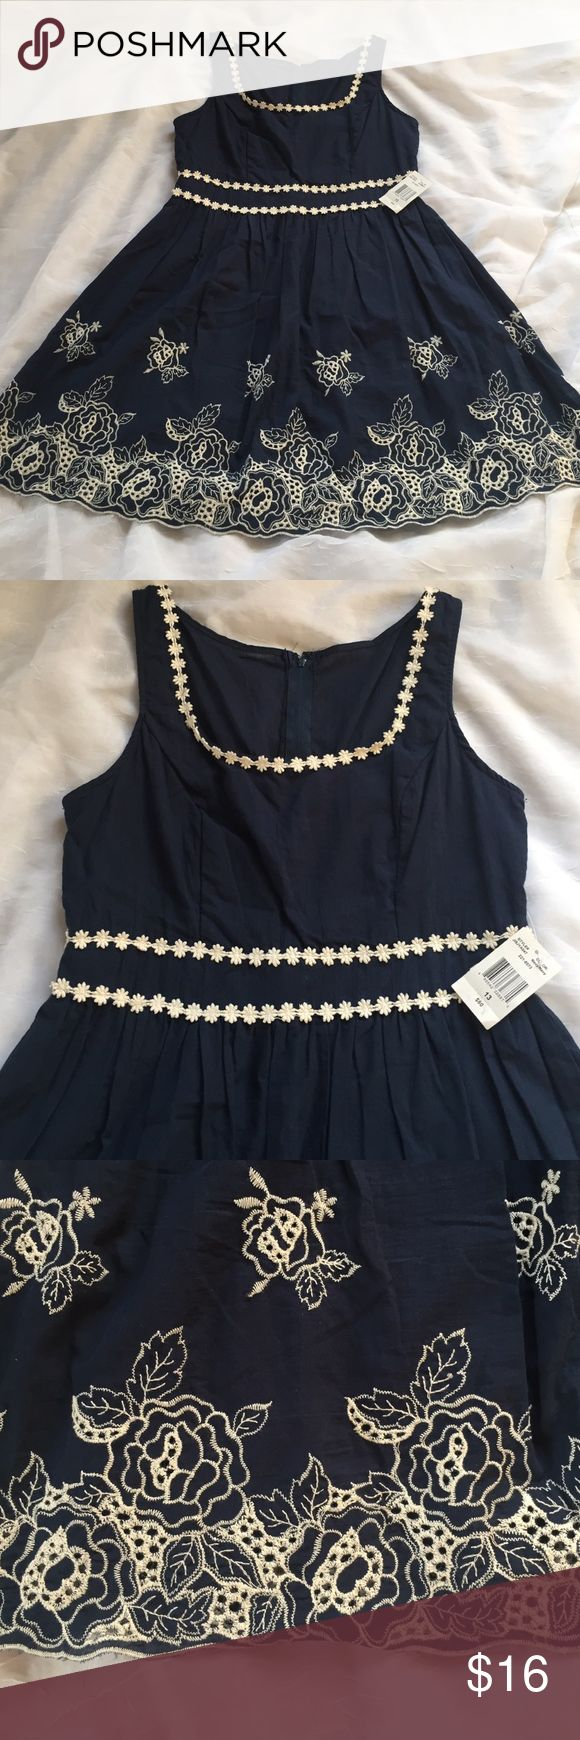 """NWT B Smart embroidered and eyelet dress, 13 Navy blue fit and flare dress with embroidered flowers along neck and at waist. Eyelet embroidered flowers along scalloped hem. 100% cotton shell with 100% polyester liner. Brand new with tags. Size 13 bust 36"""", waist 31"""", length 35"""". 💥Please use measurements provided and ask any question prior to purchase! I want happy customers. 😊 B. Smart Dresses Mini"""